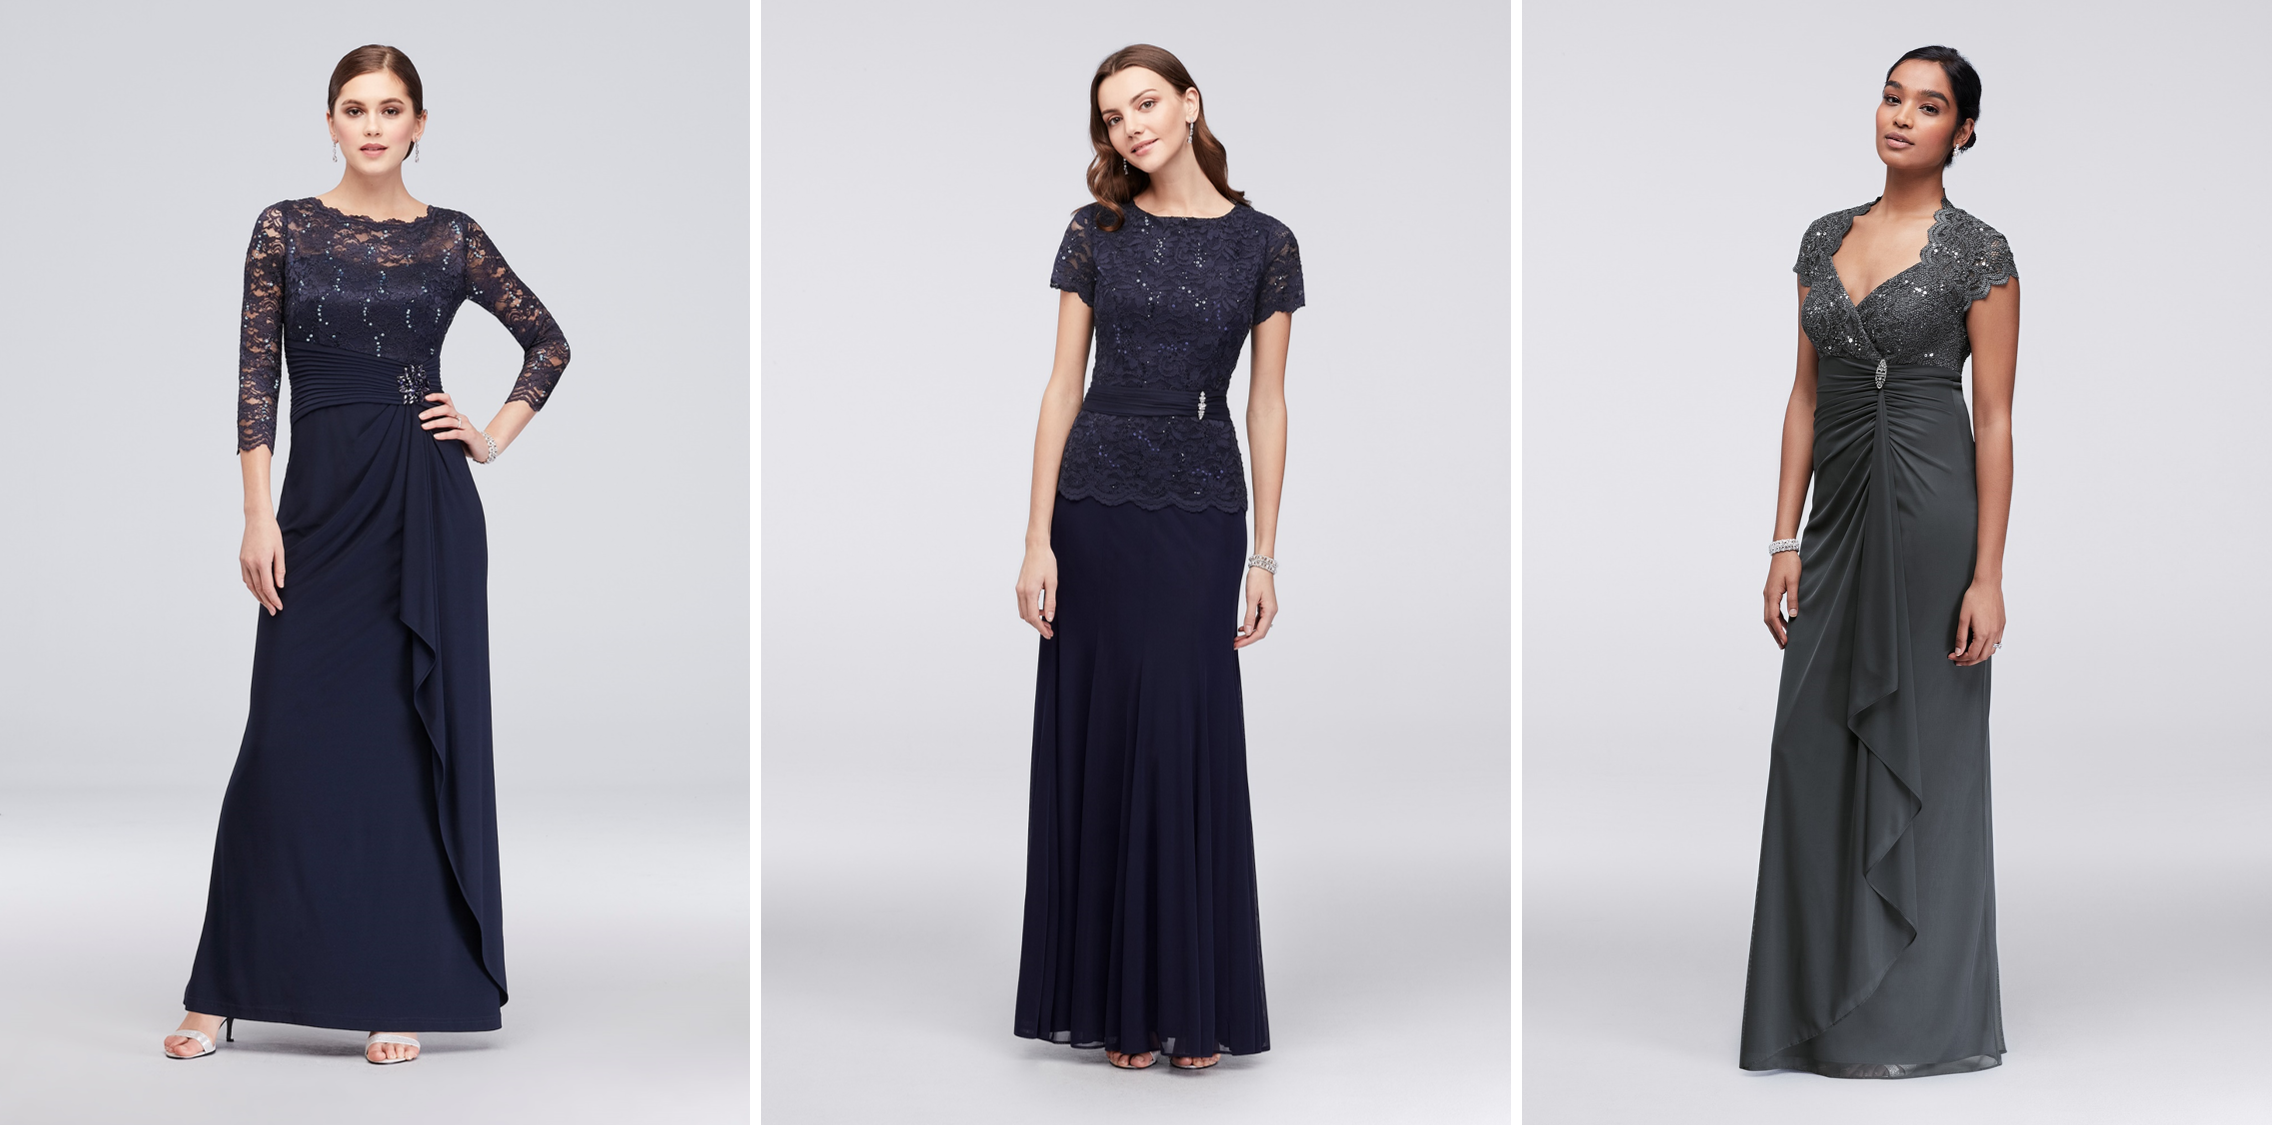 Mother of the Bride Dresses for Different Body Types | Camouflage Your Tummy